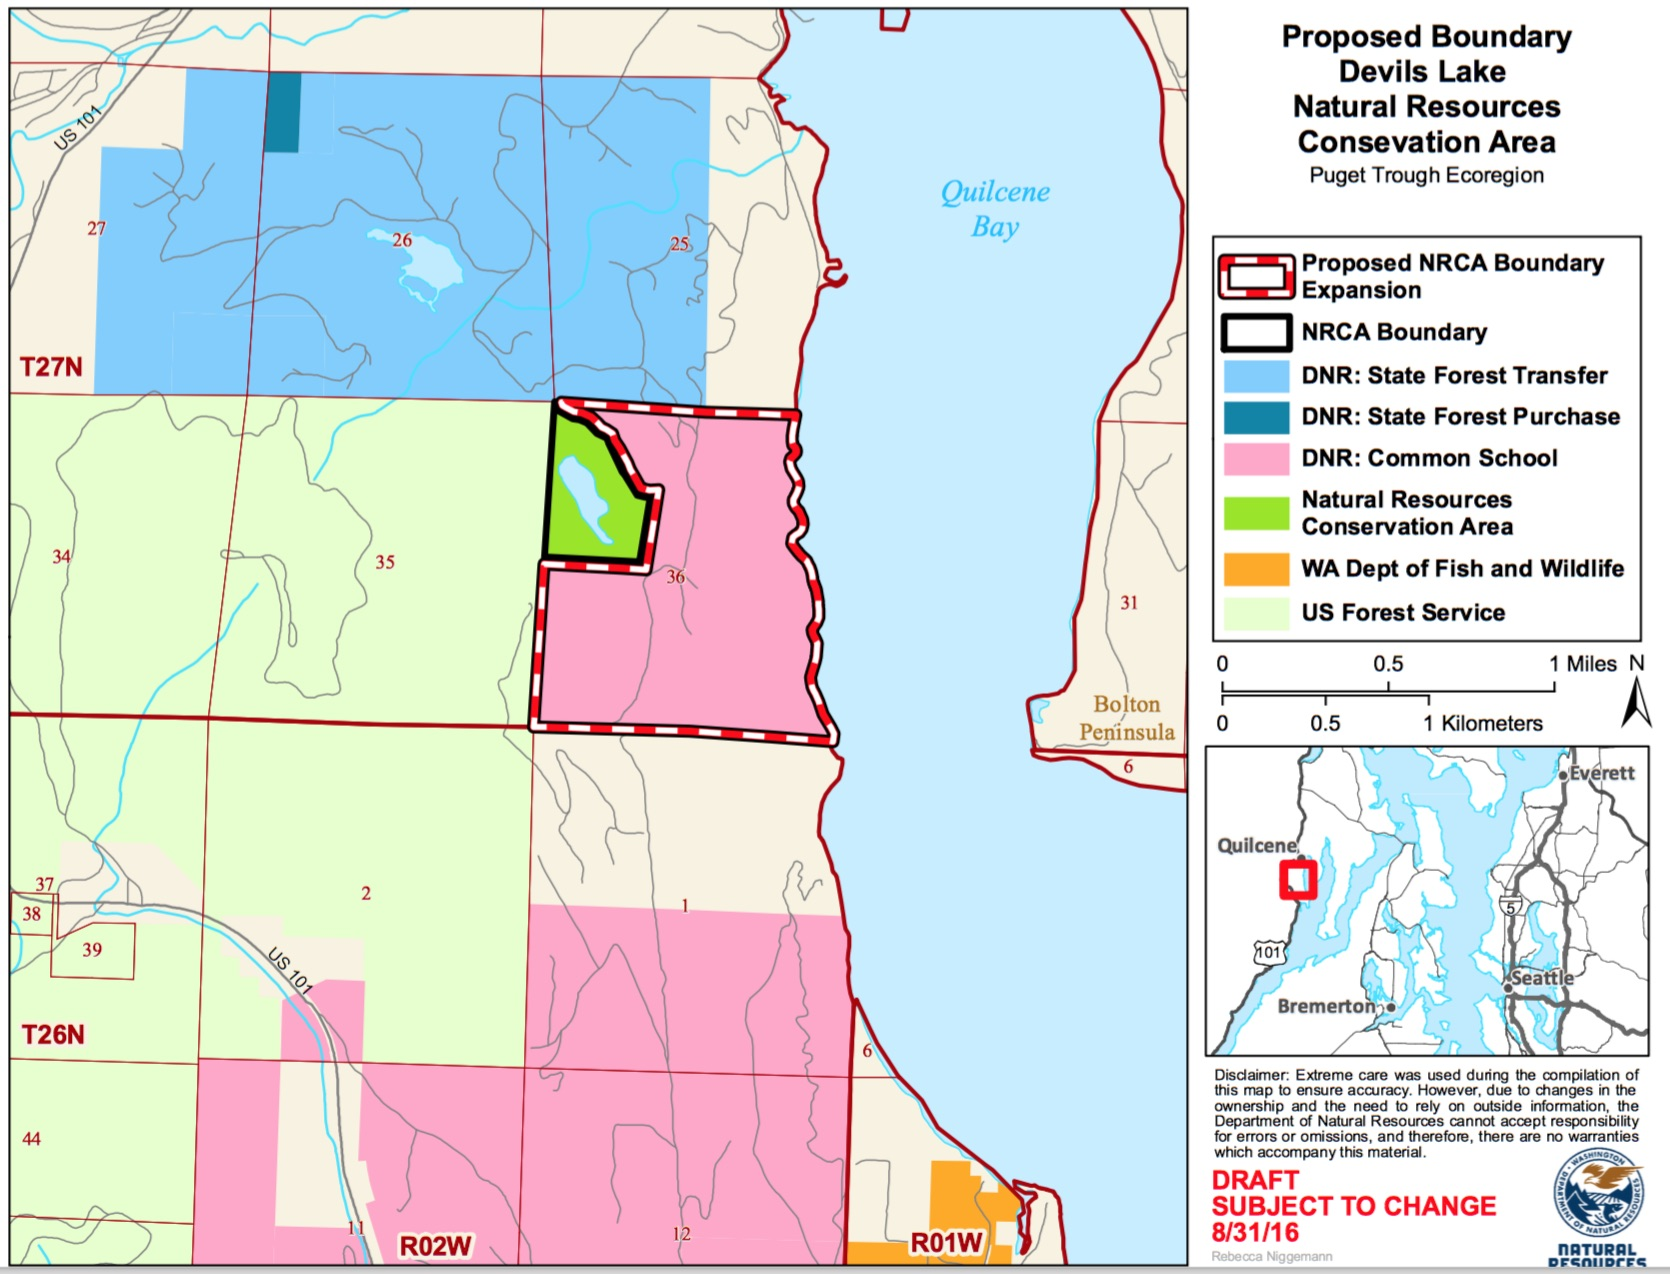 New protections planned for Devils Lake and Dabob Bay natural areas